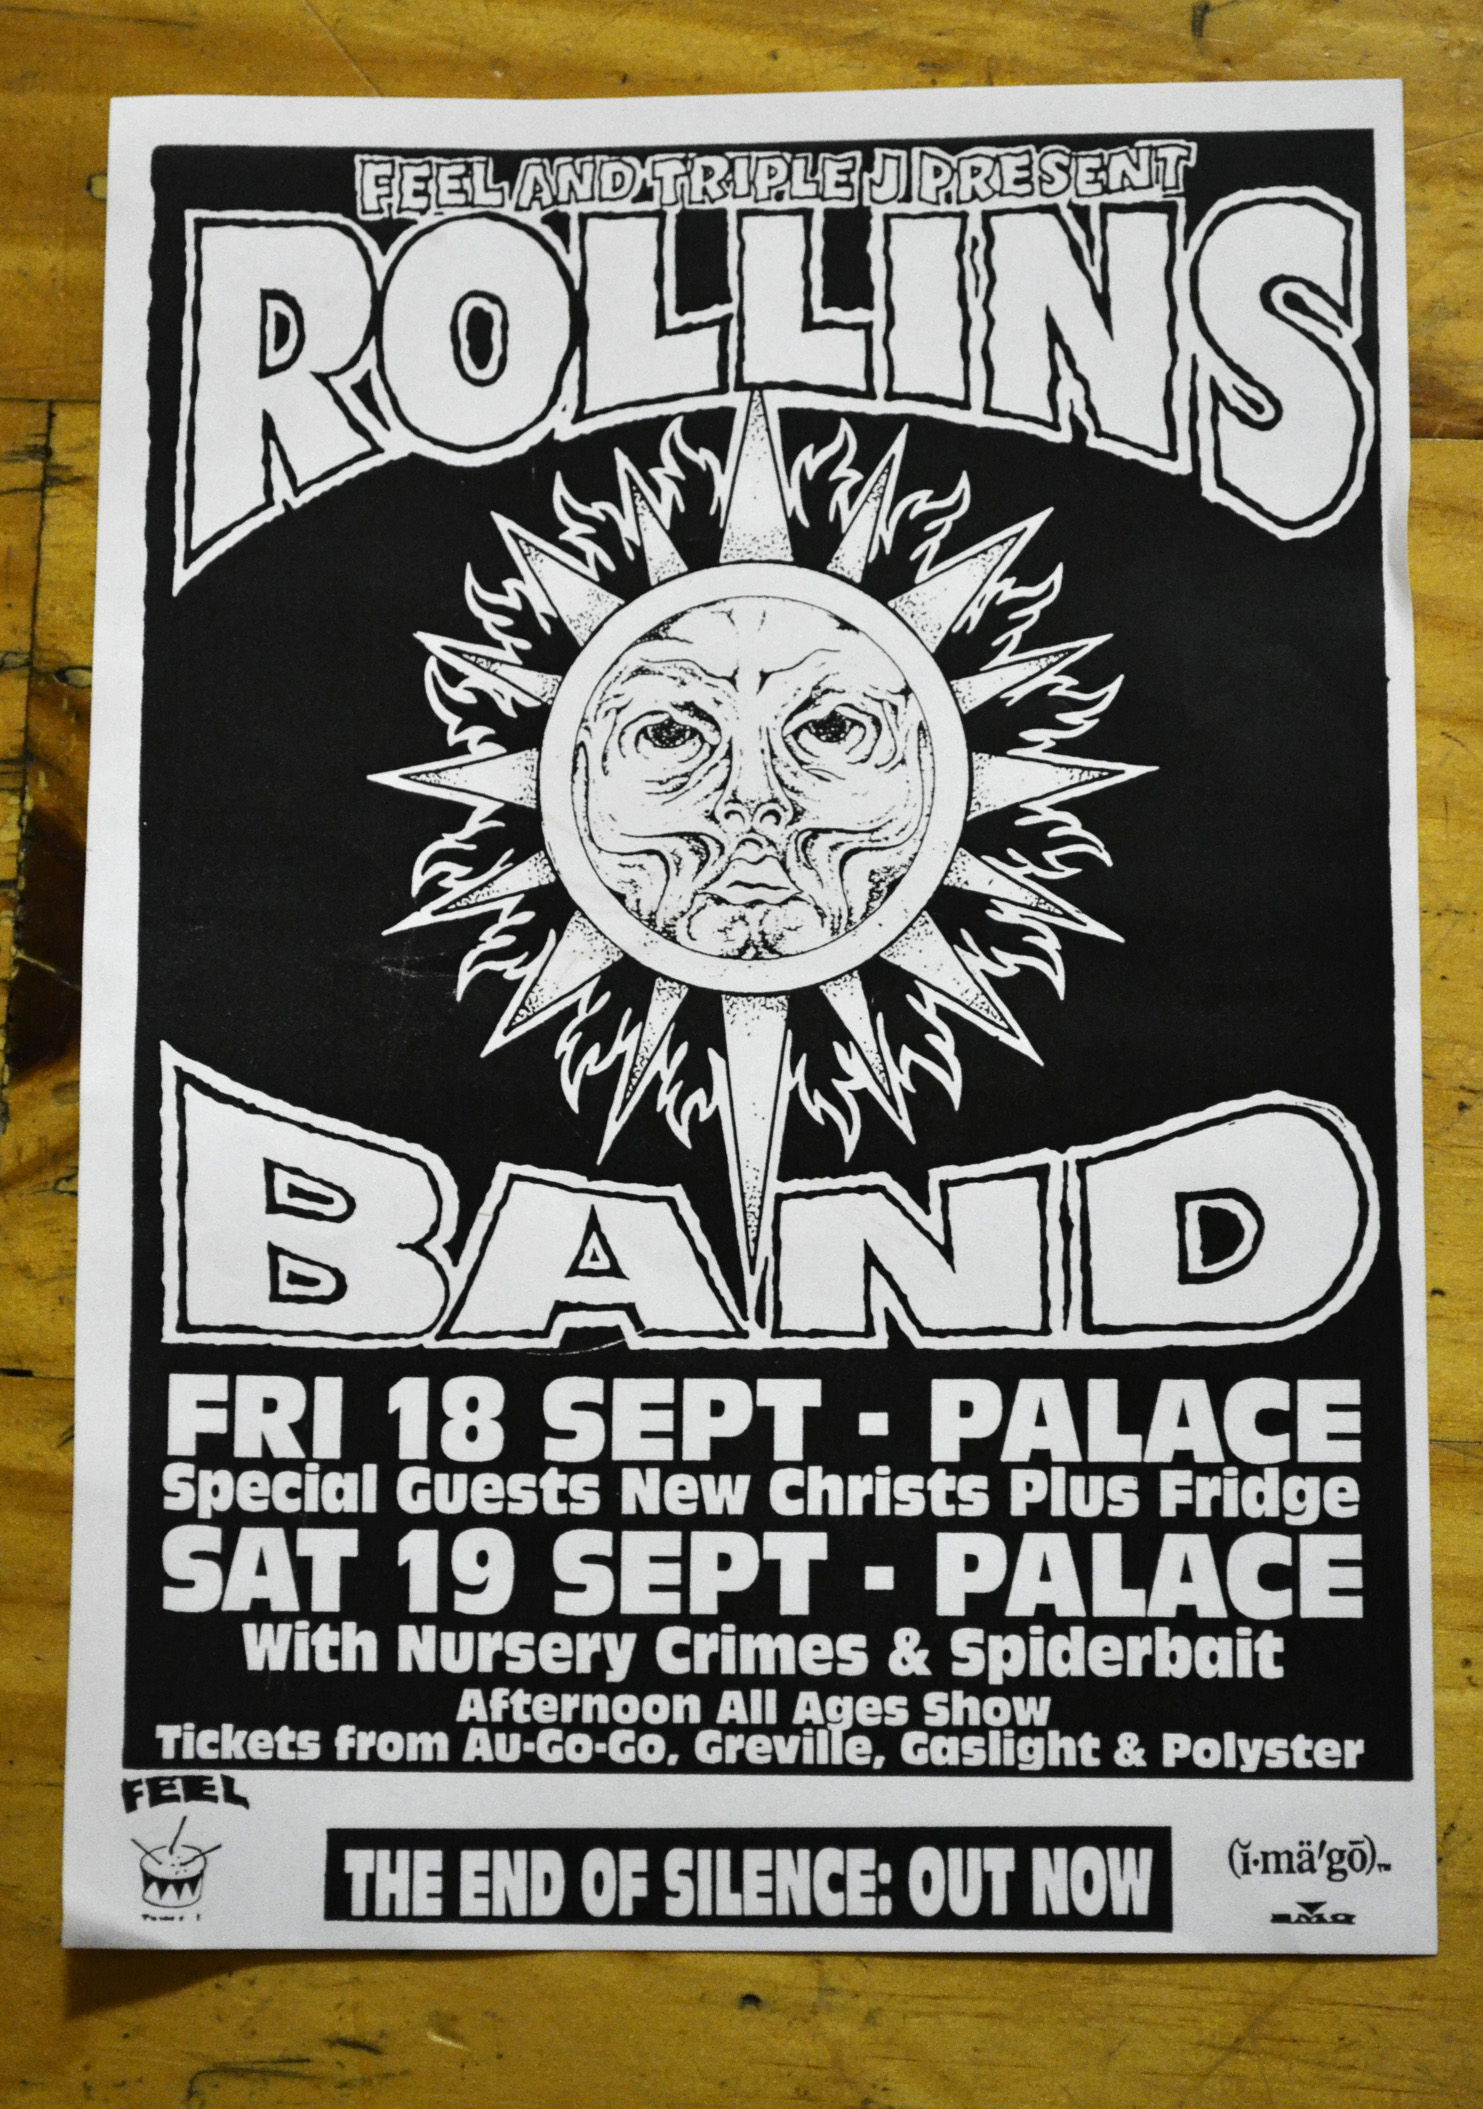 Flyer for the 1992 Rollins Band tour of Melbourne, Australia ...